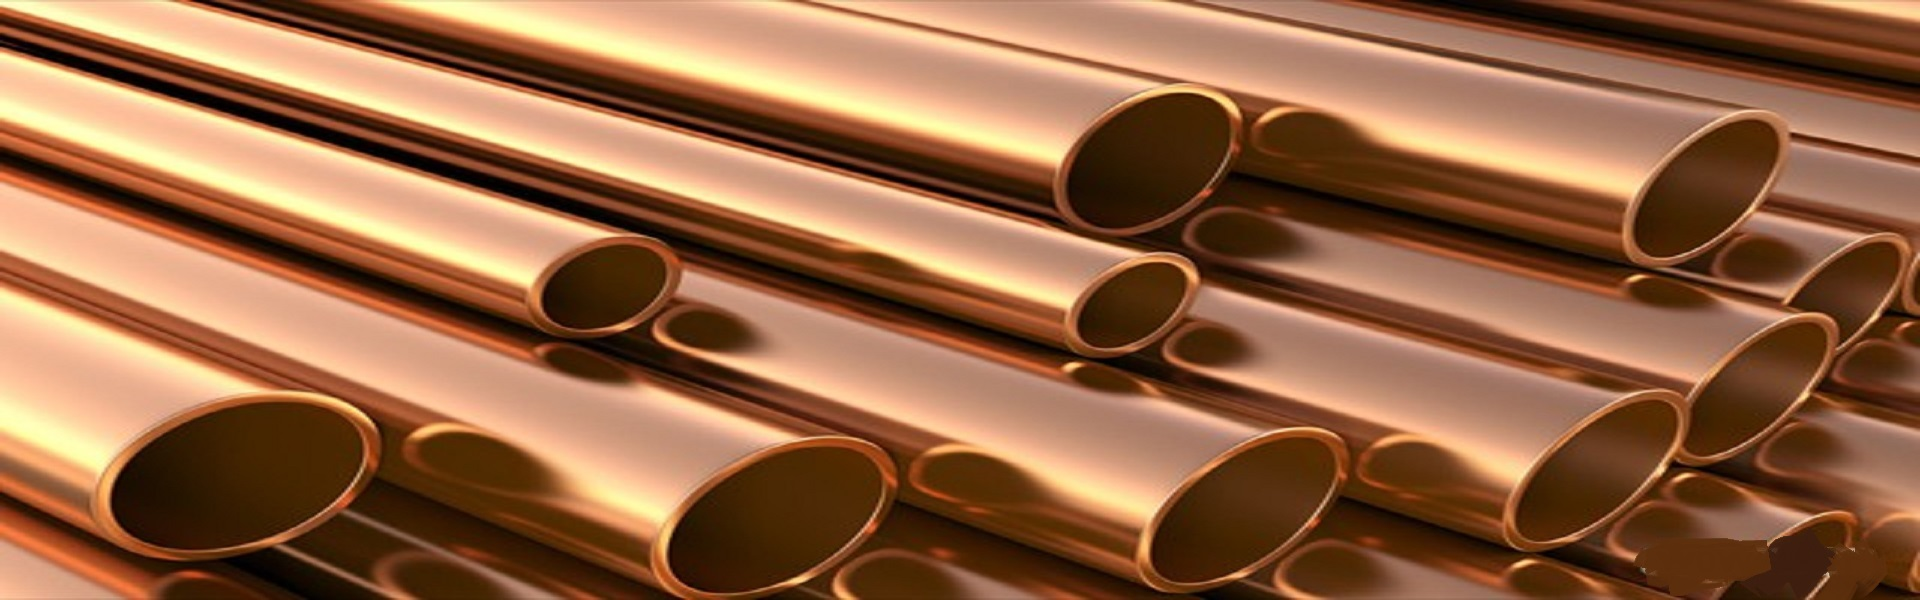 Copper Round Pipes